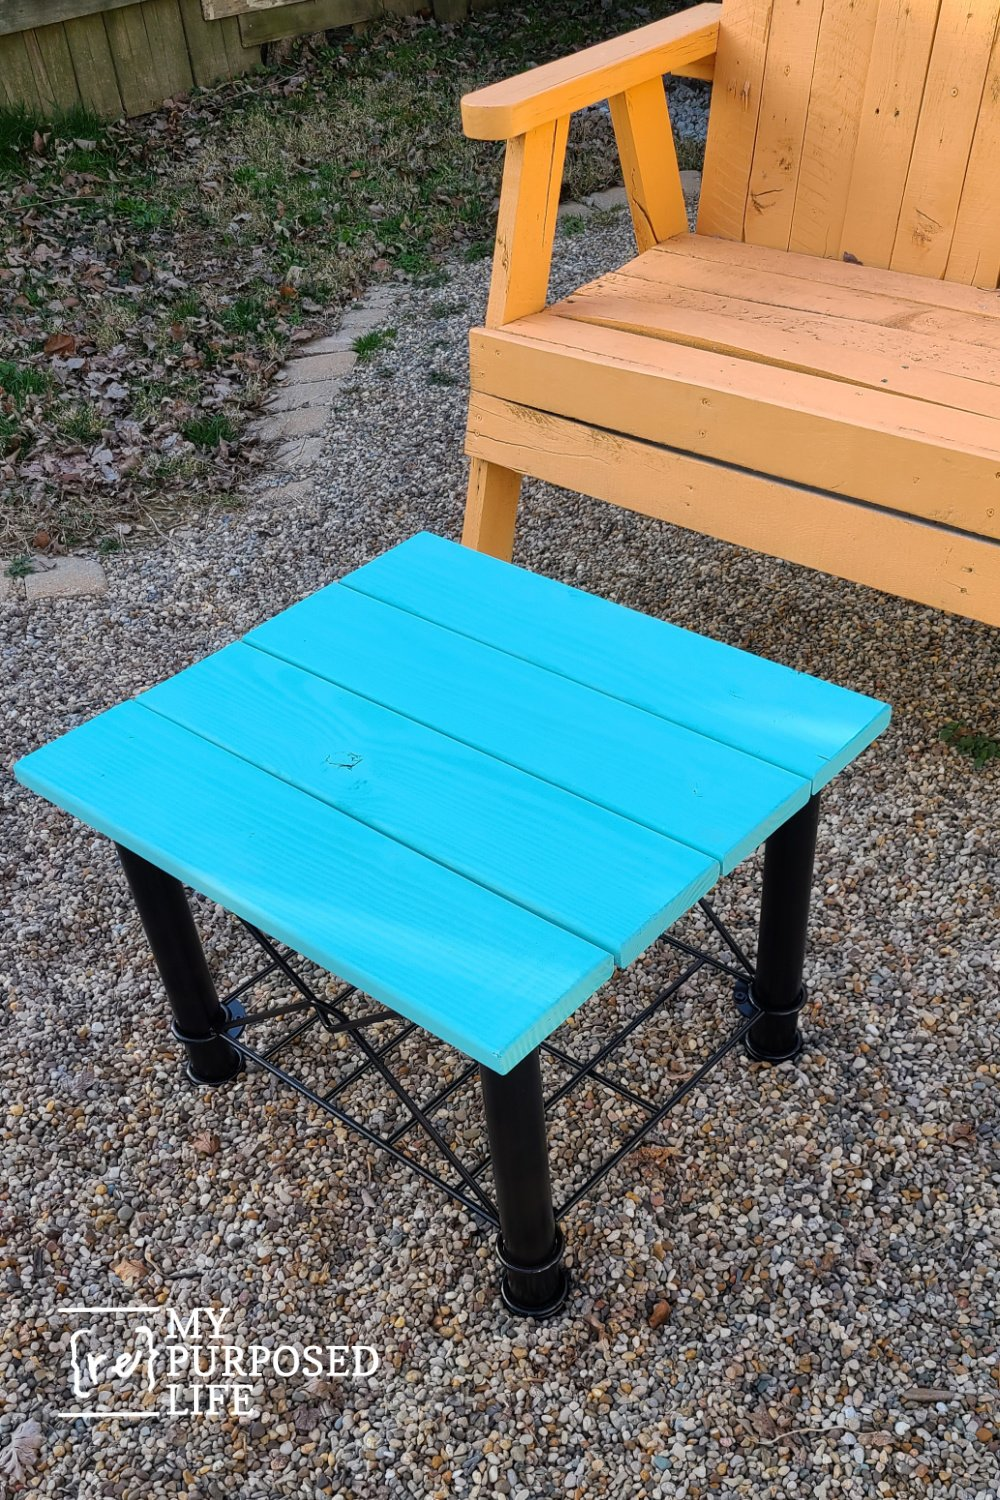 Use an upcycled metal table frame to make a very colorful and useful table for an outdoor space. It's easier than you think. I'll show you how. #MyRepurposedLife #repurposed #upcycled #metal #table via @repurposedlife